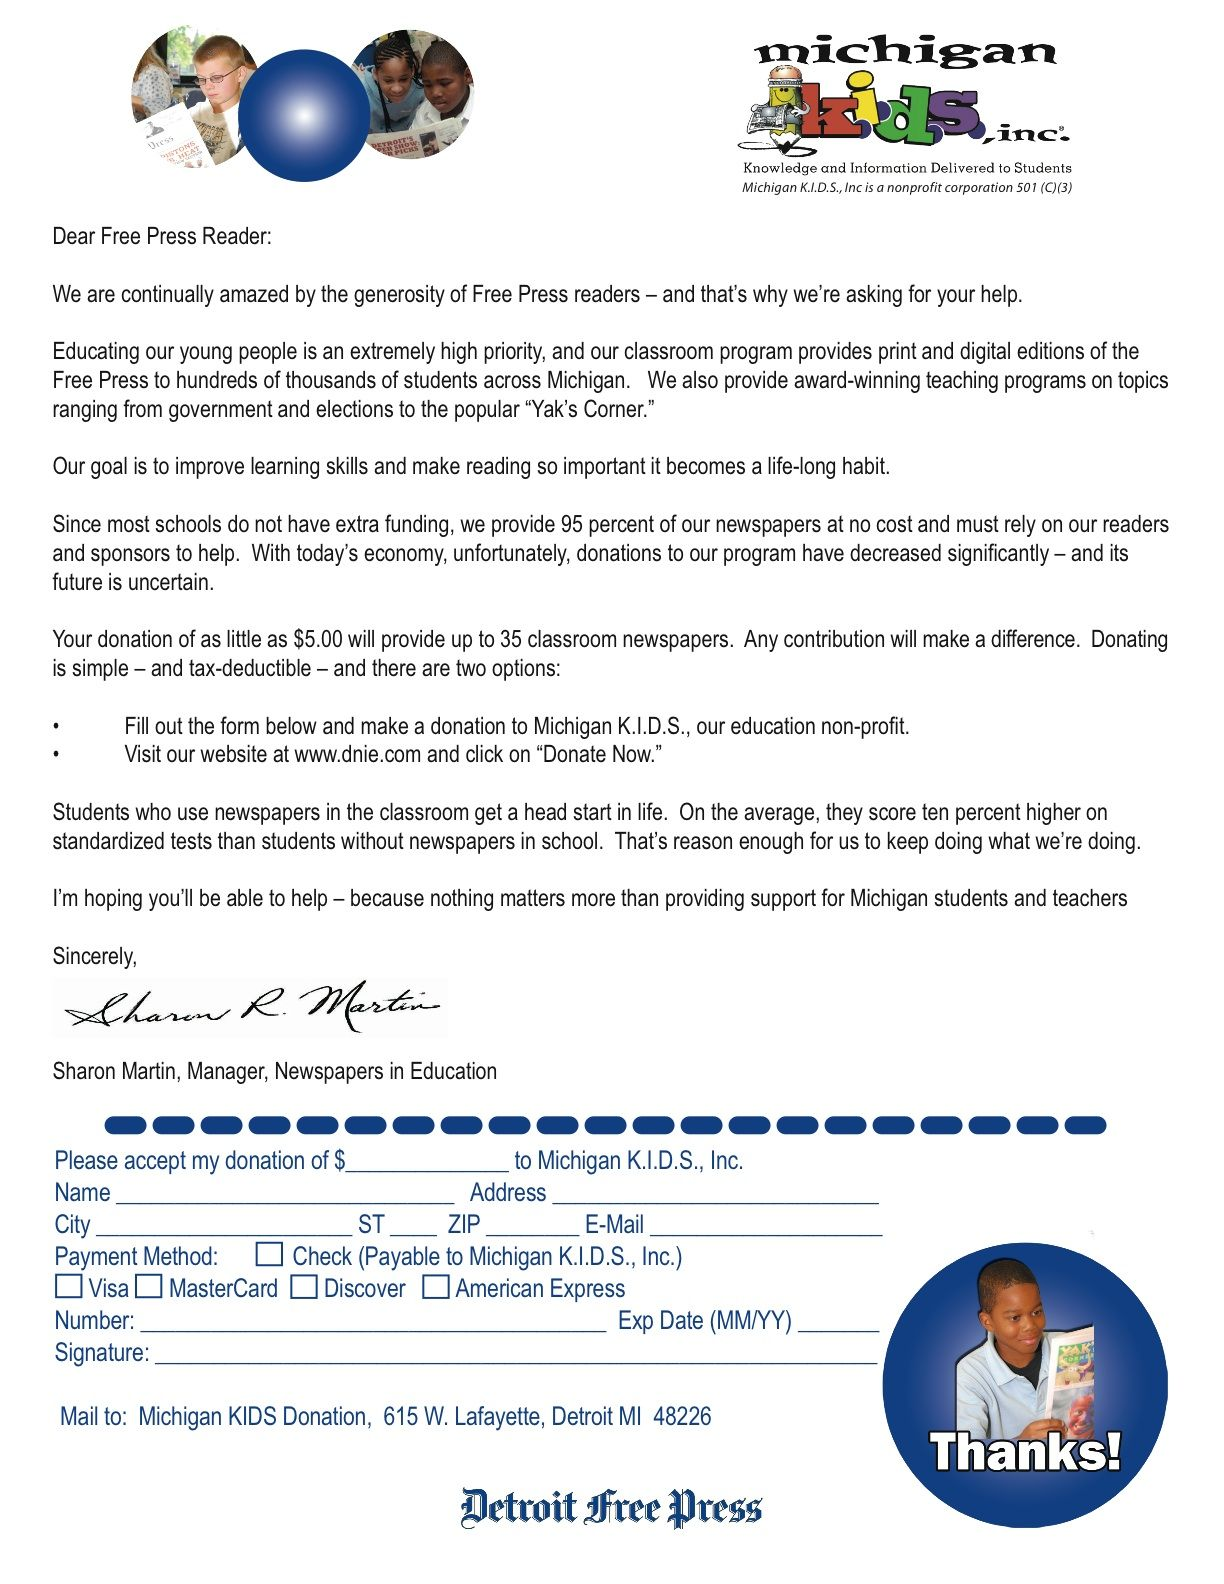 School fundraiser cover letter example of a school fundraising school fundraiser cover letter example of a school fundraising donation letter that you can copy spiritdancerdesigns Images